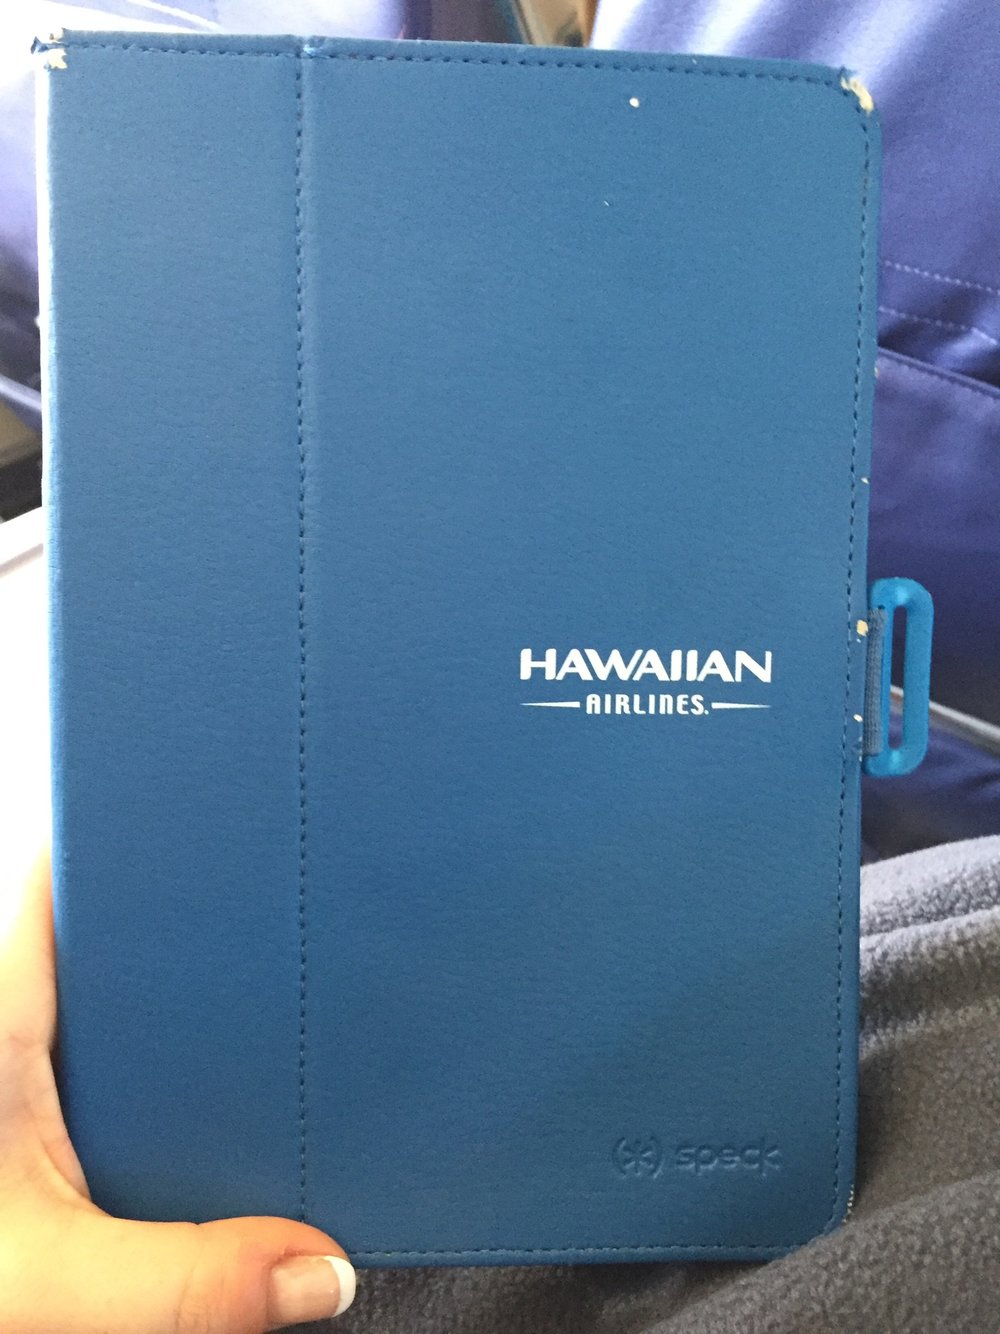 In-flight entertainment iPad Mini from Hawaiian Airlines. The case showed some wear, but the iPad functioned perfectly.